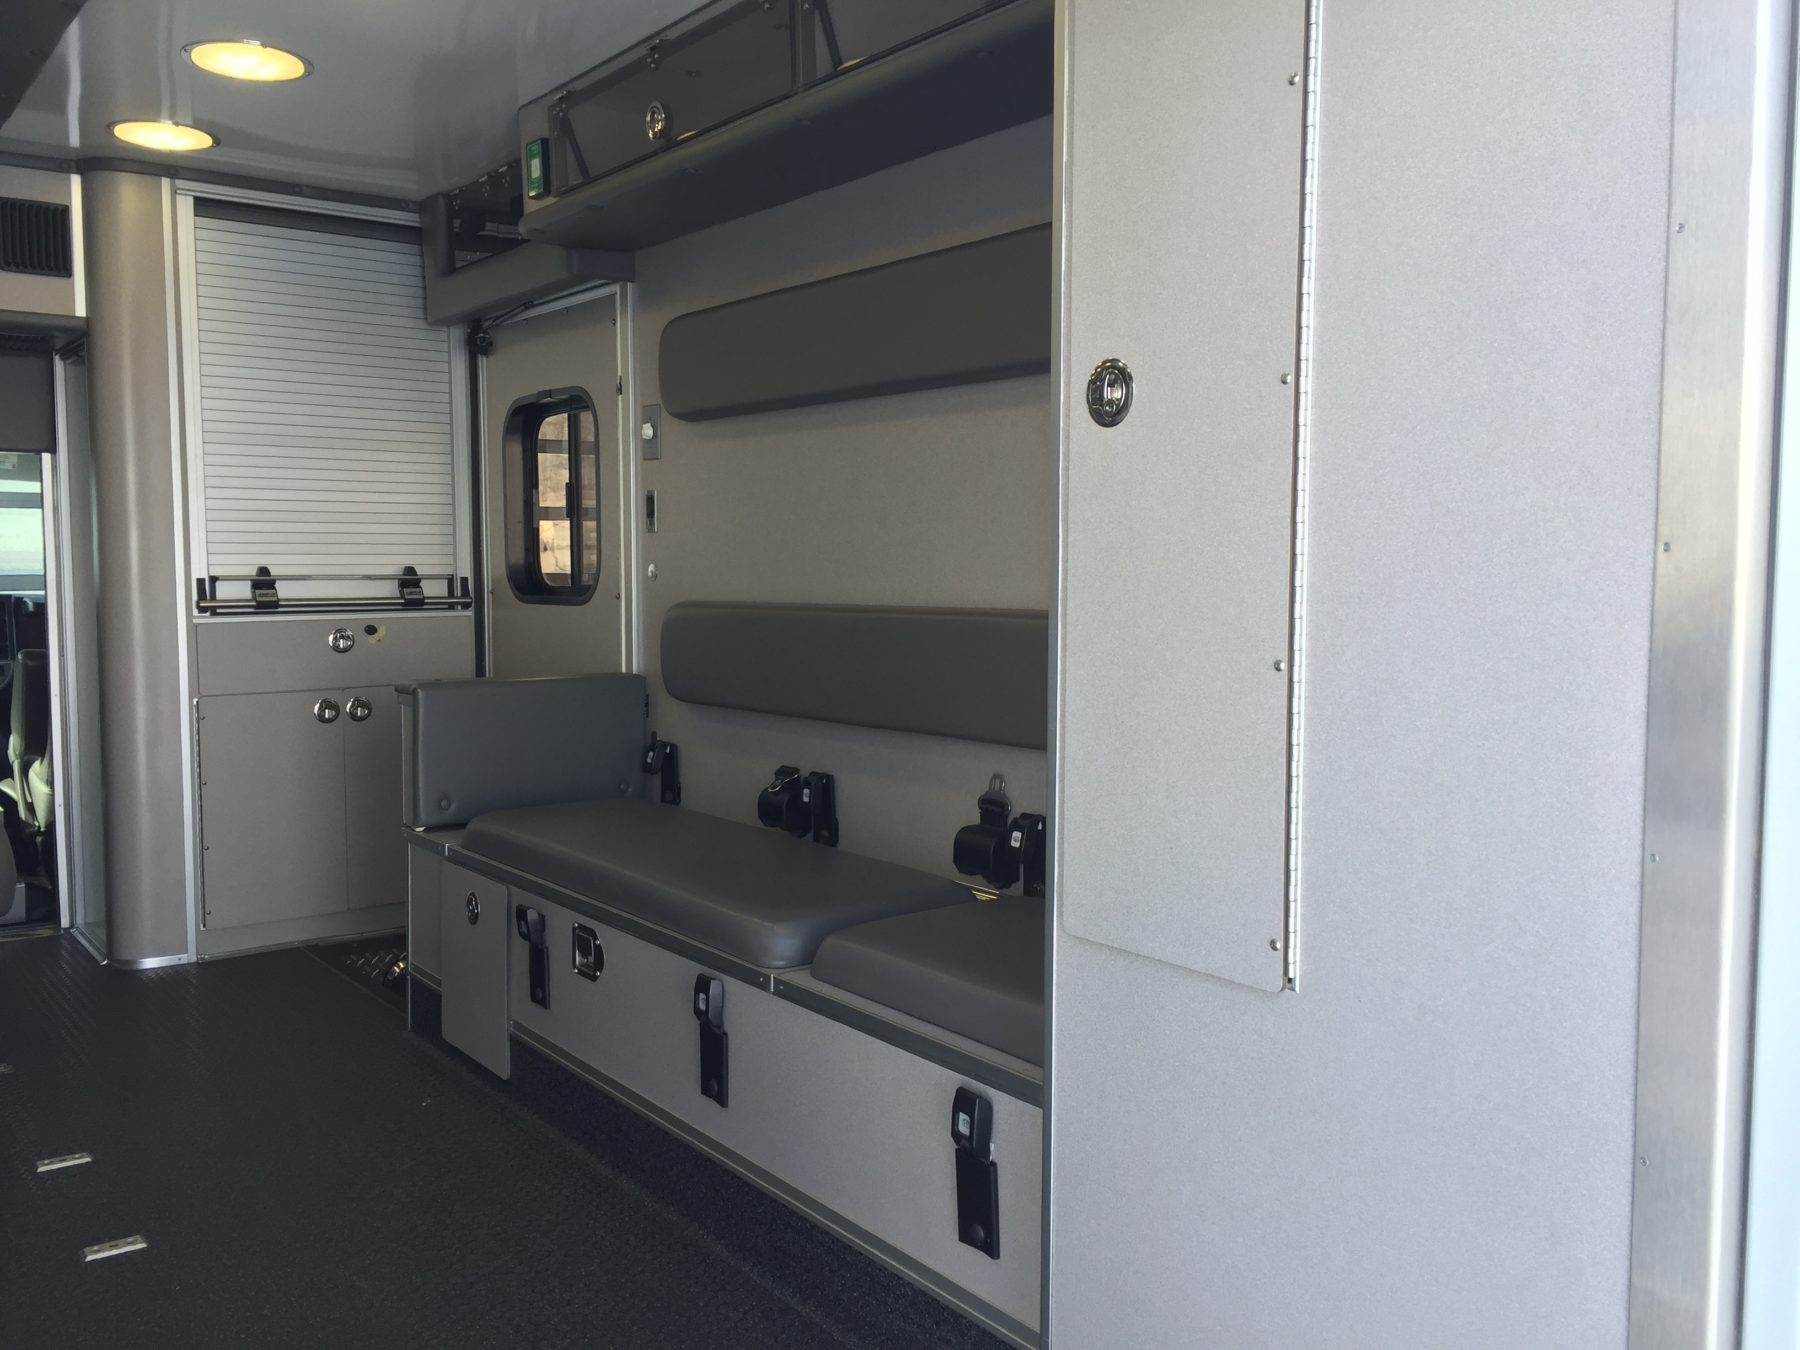 2010 Chevrolet G4500 Type 3 Ambulance For Sale – Picture 13